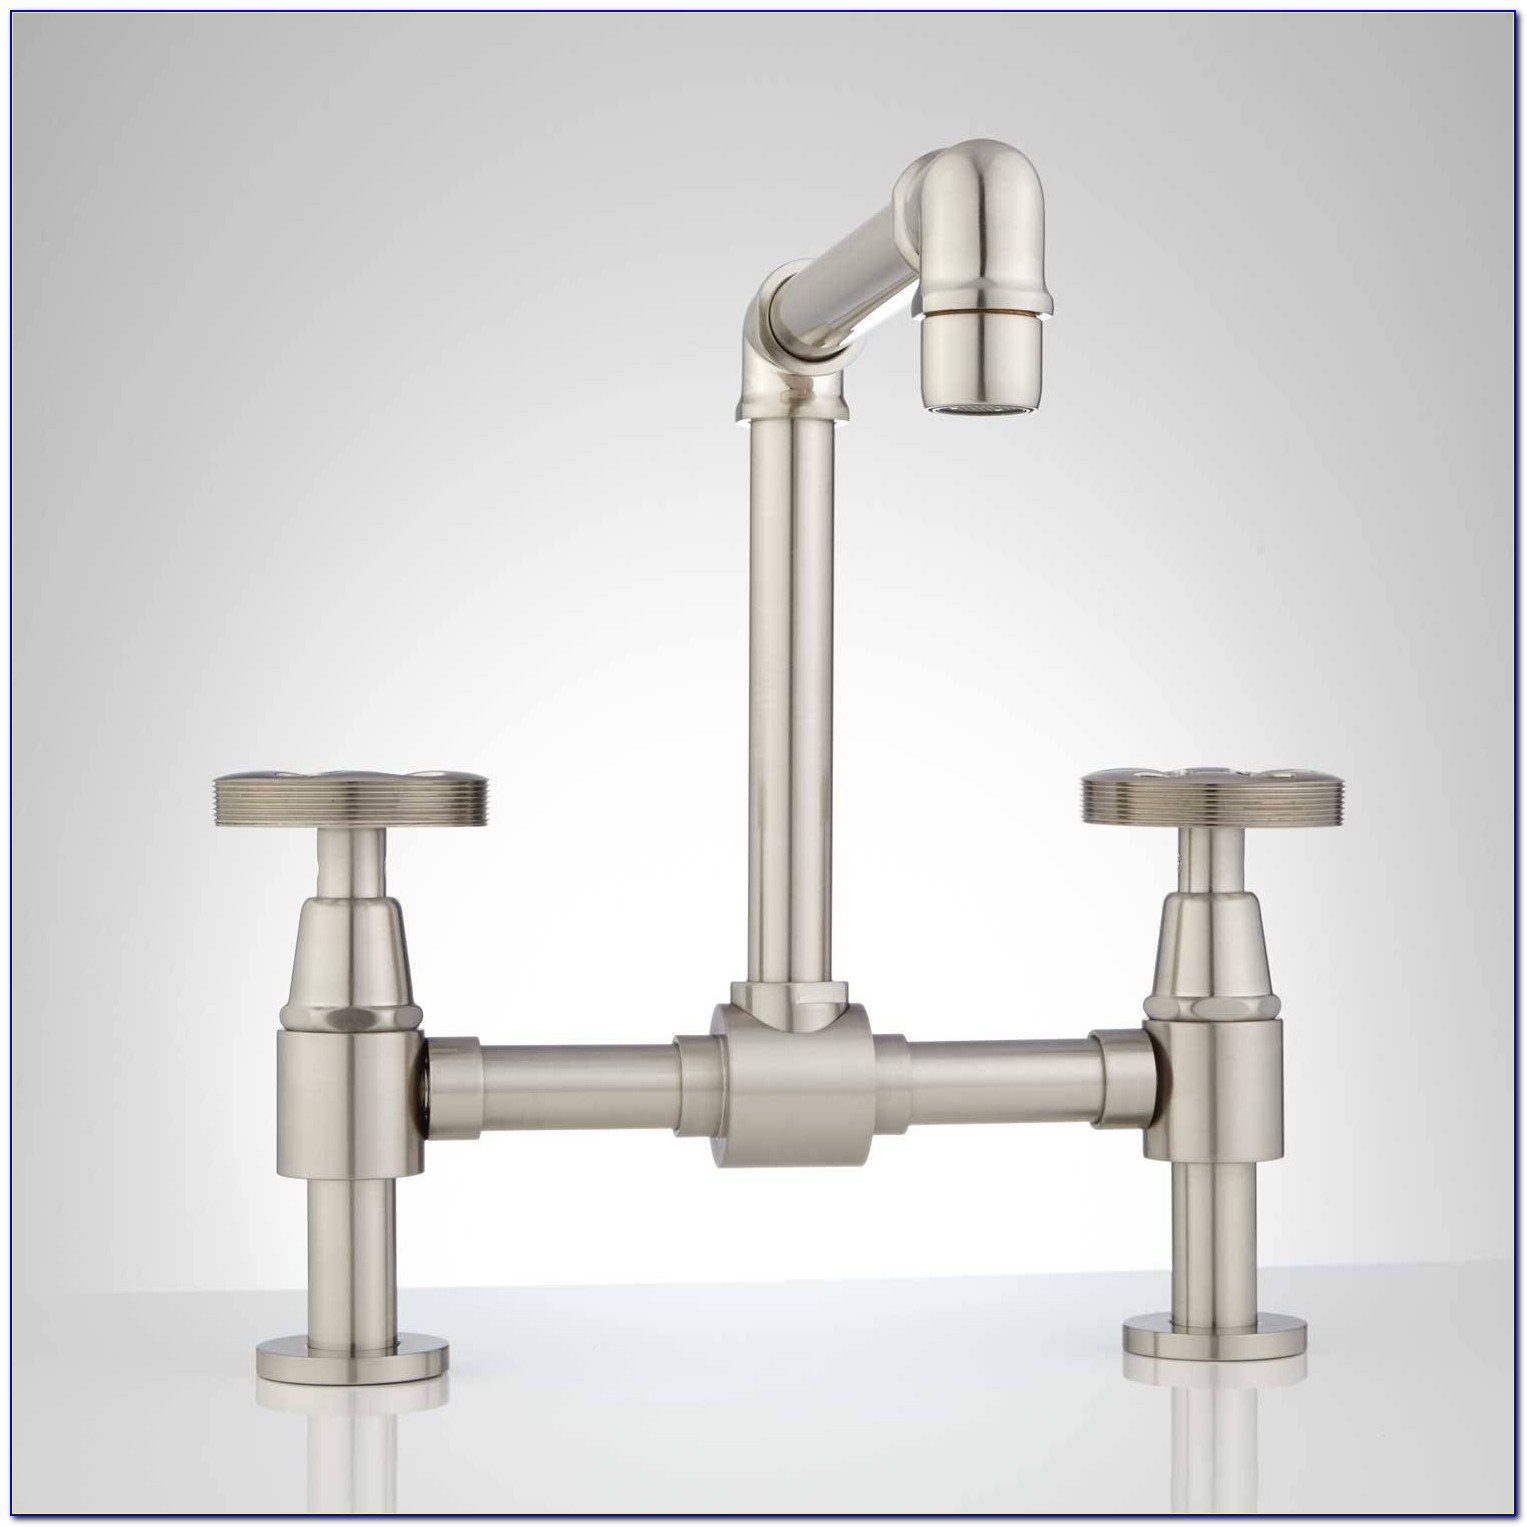 Top Rated Single Hole Bathroom Faucets Top Rated Single Hole Bathroom Faucets Kitchen Delta Sink Faucets Gallery And Top Rated Images Motion 1500 X 1500